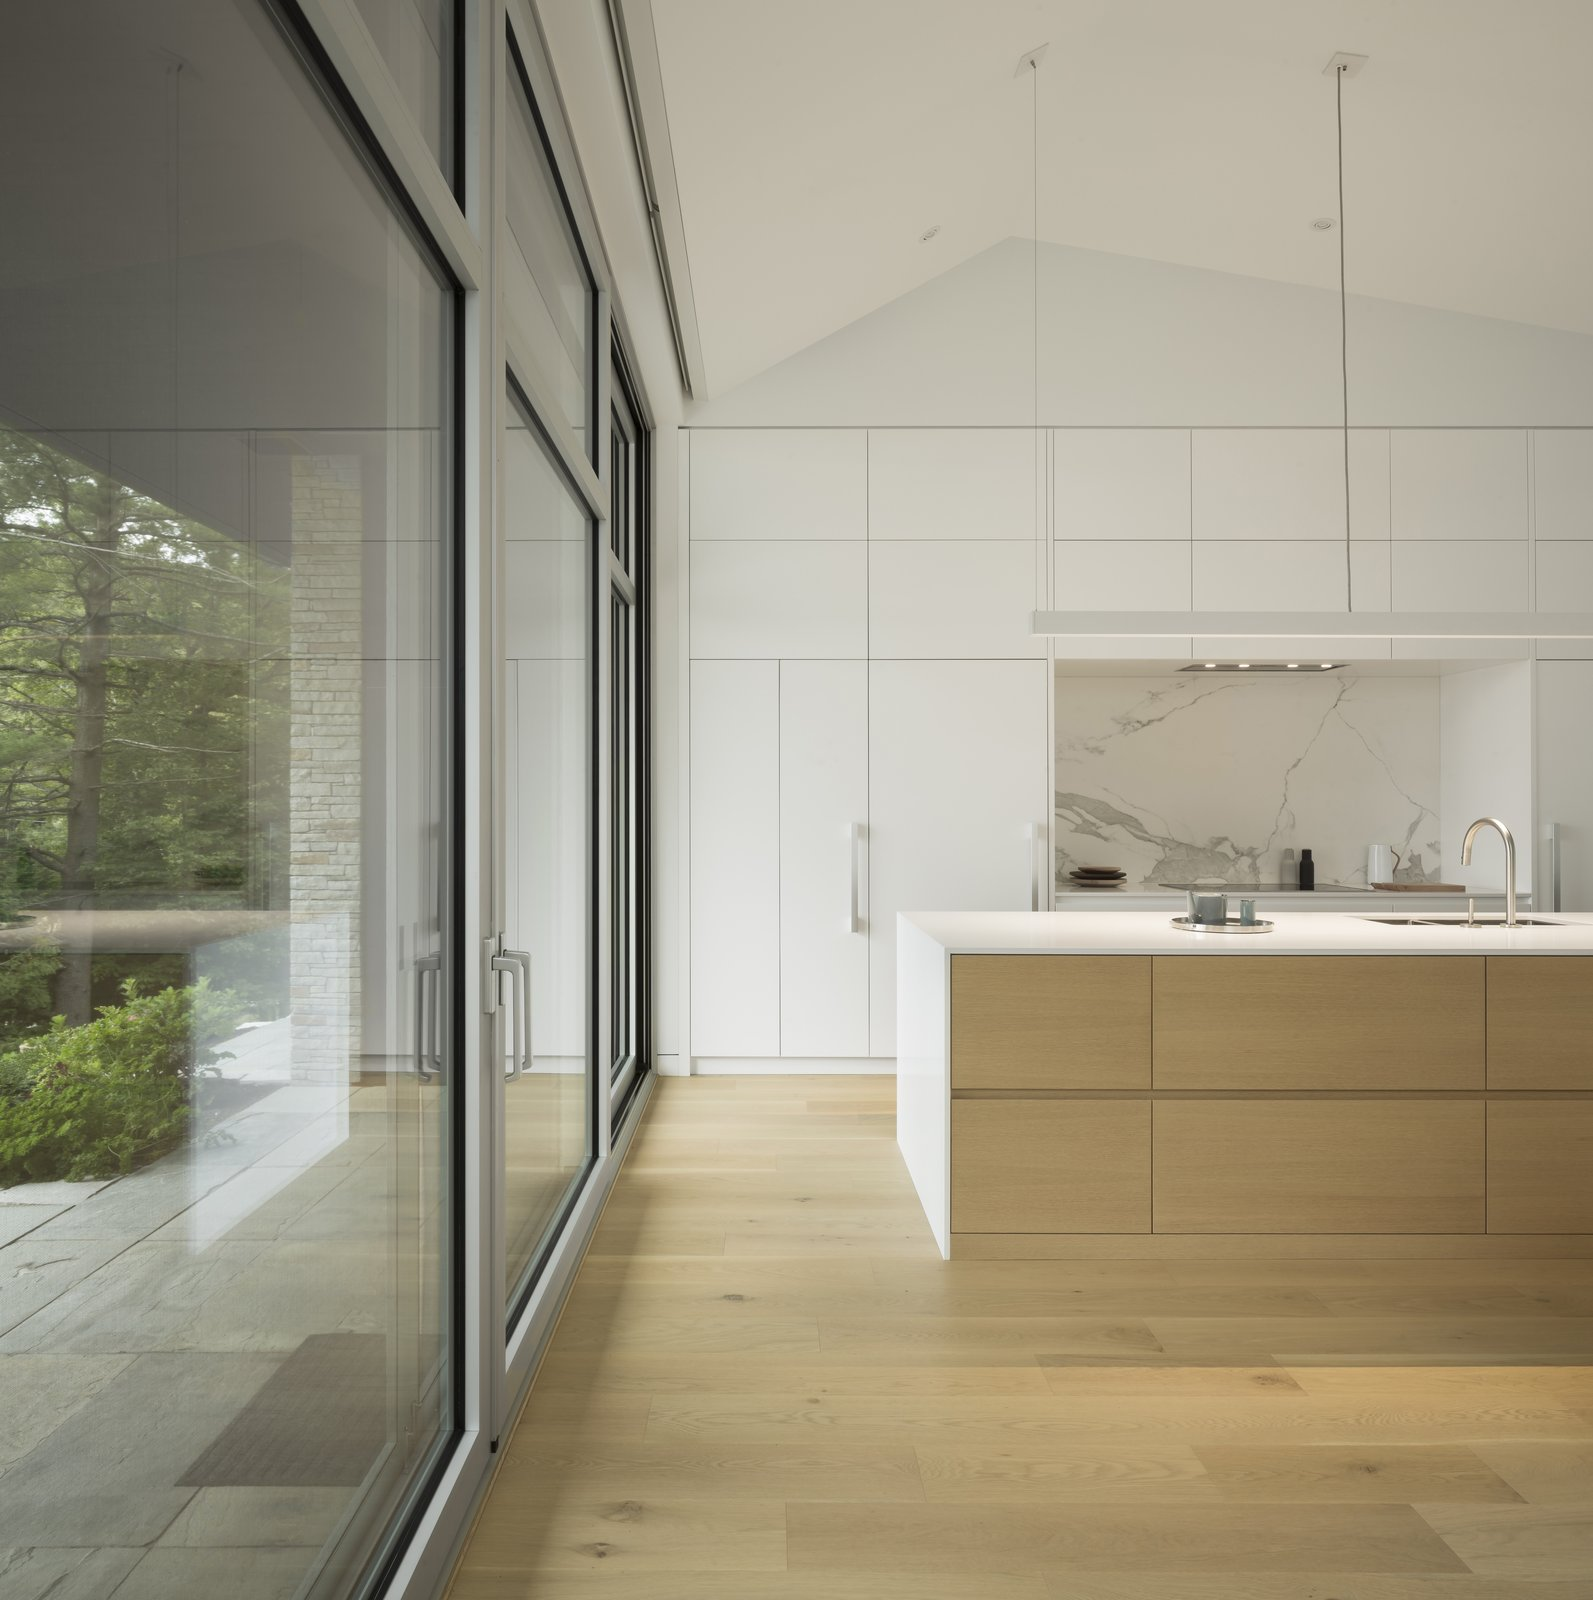 Kitchen, Recessed, Marble, Cooktops, Marble, White, Light Hardwood, Ceiling, and Drop In The white kitchen appears as if it were an extension of the walls and ceilings.  Best Kitchen Drop In Marble Photos from A Lakeside Retreat in Quebec Looks Sharp With a Blade-Like Roof